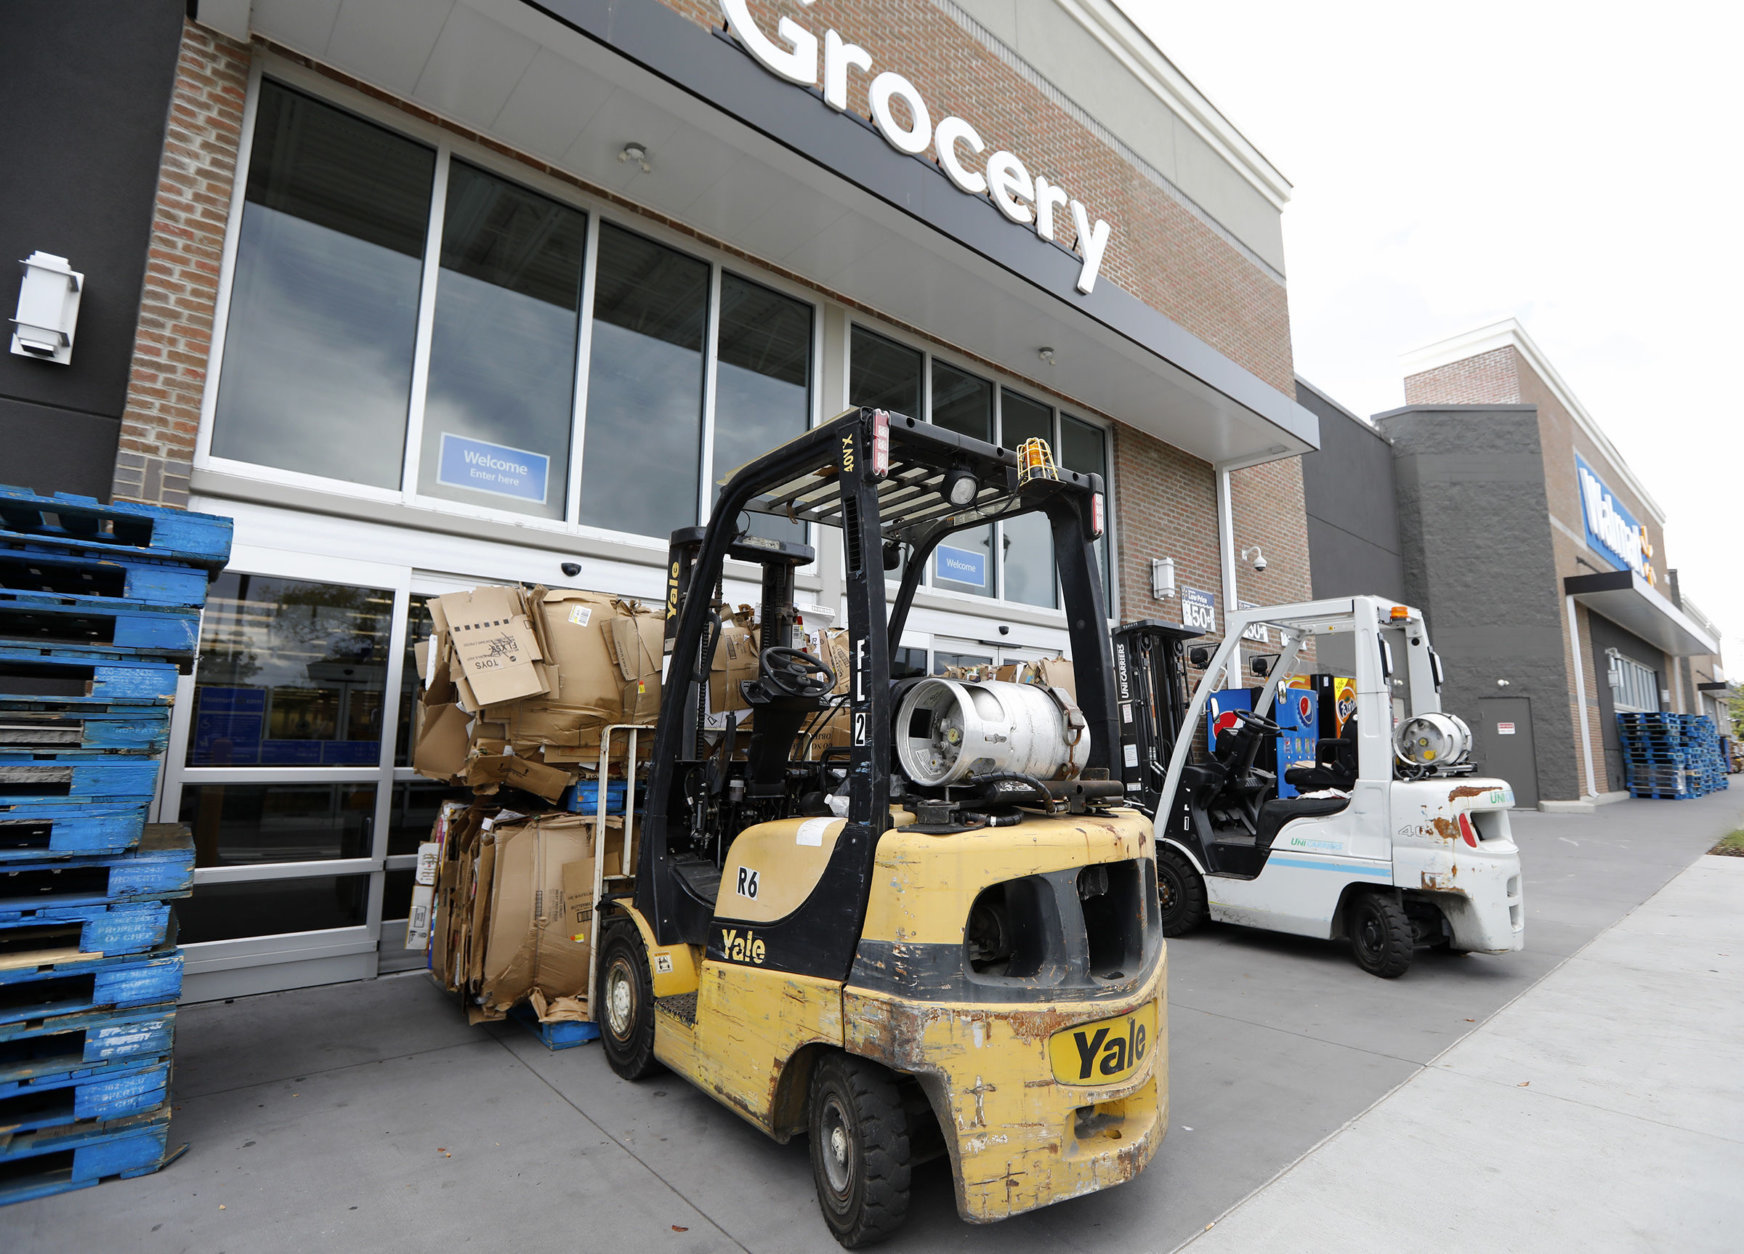 A Walmart in Mt. Pleasant, S.C, is closed, and barricaded, after Gov. Henry McMaster ordered a mandatory evacuation due to Hurricane Florence Tuesday, Sept. 11, 2018. (AP Photo/Mic Smith)